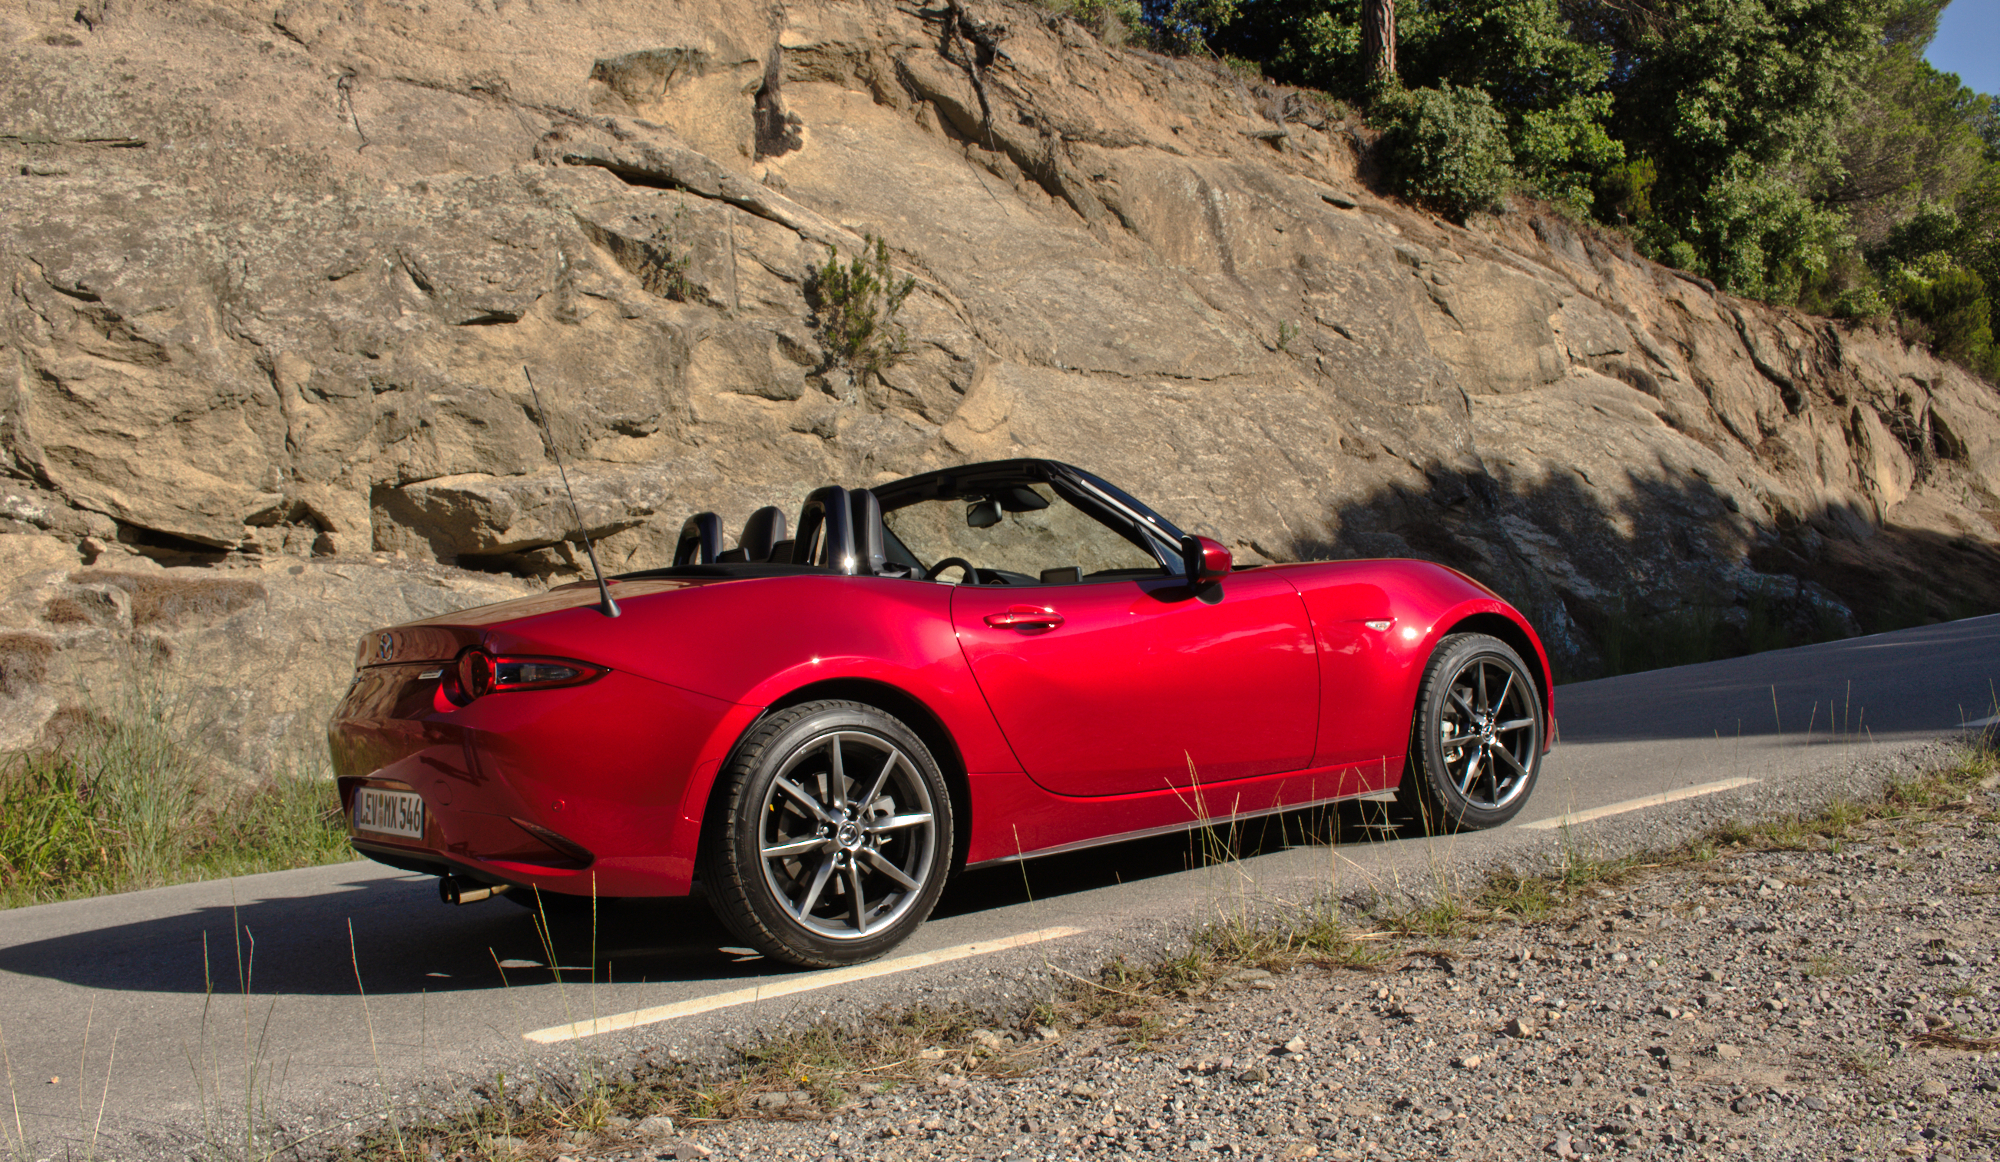 Datei 2015 Mazda Mx 5 Nd 2 0 Skyactiv G 160 I Eloop